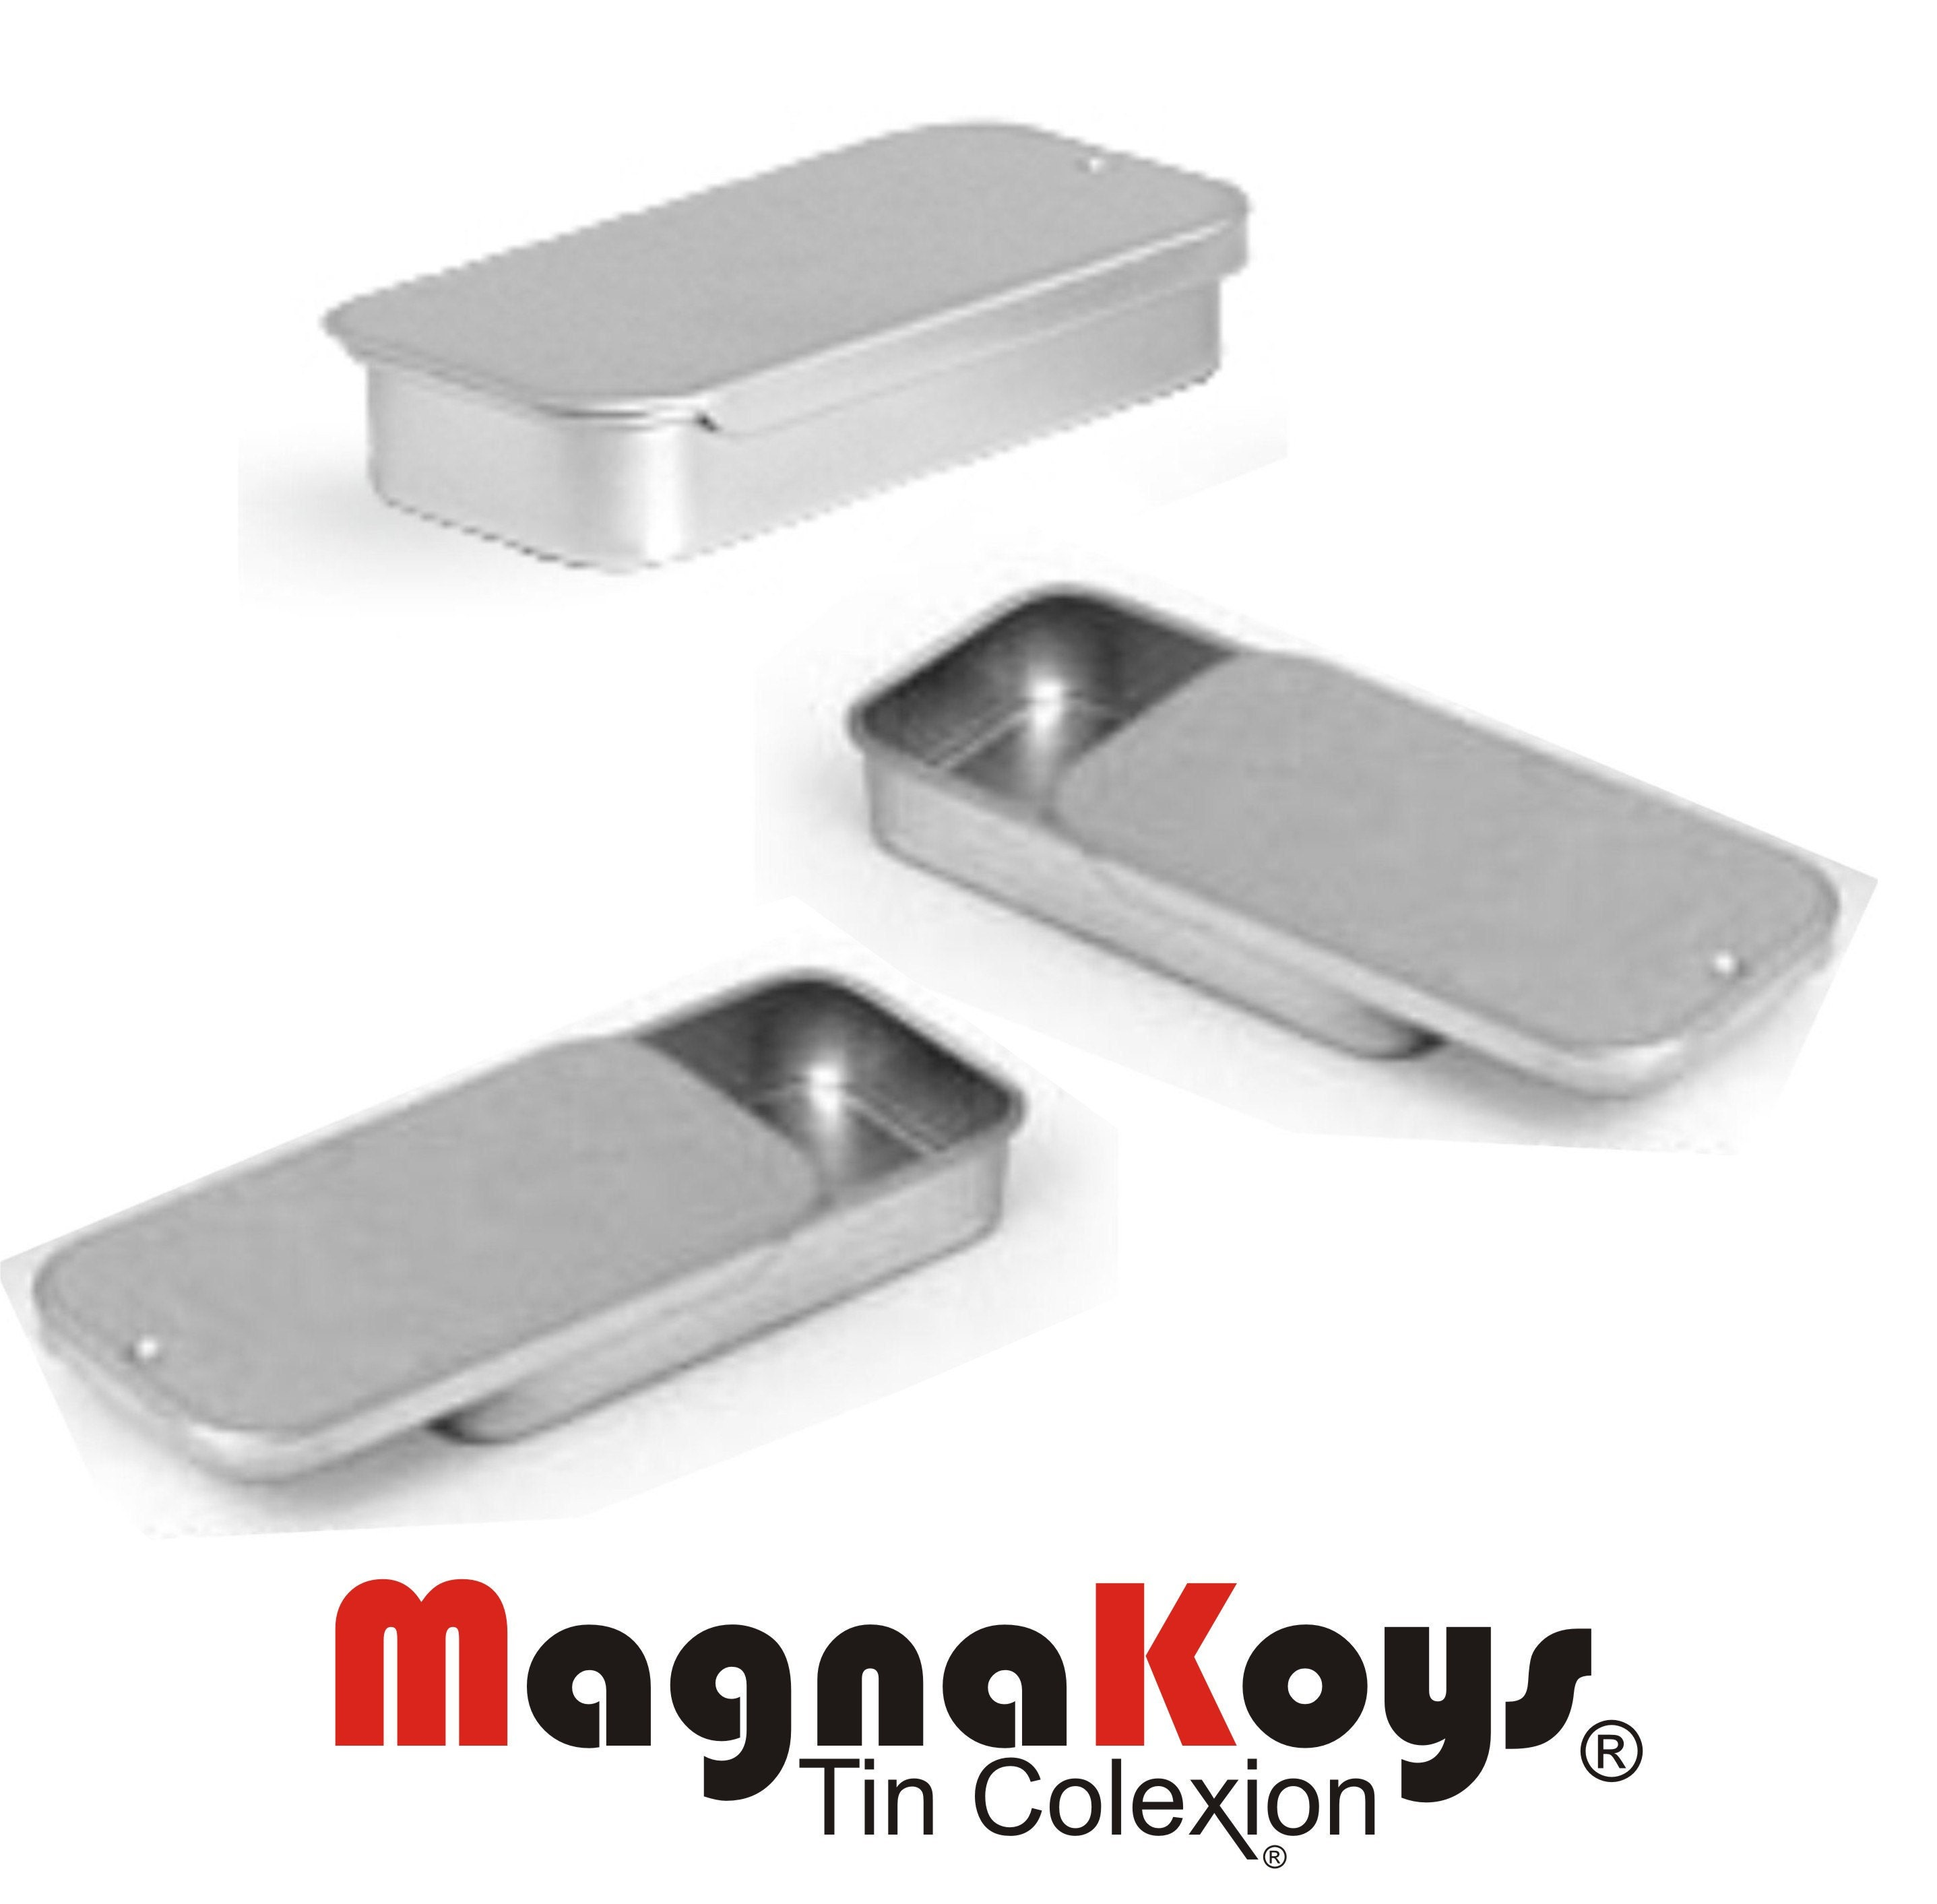 MagnaKoys® Small Slide Tins